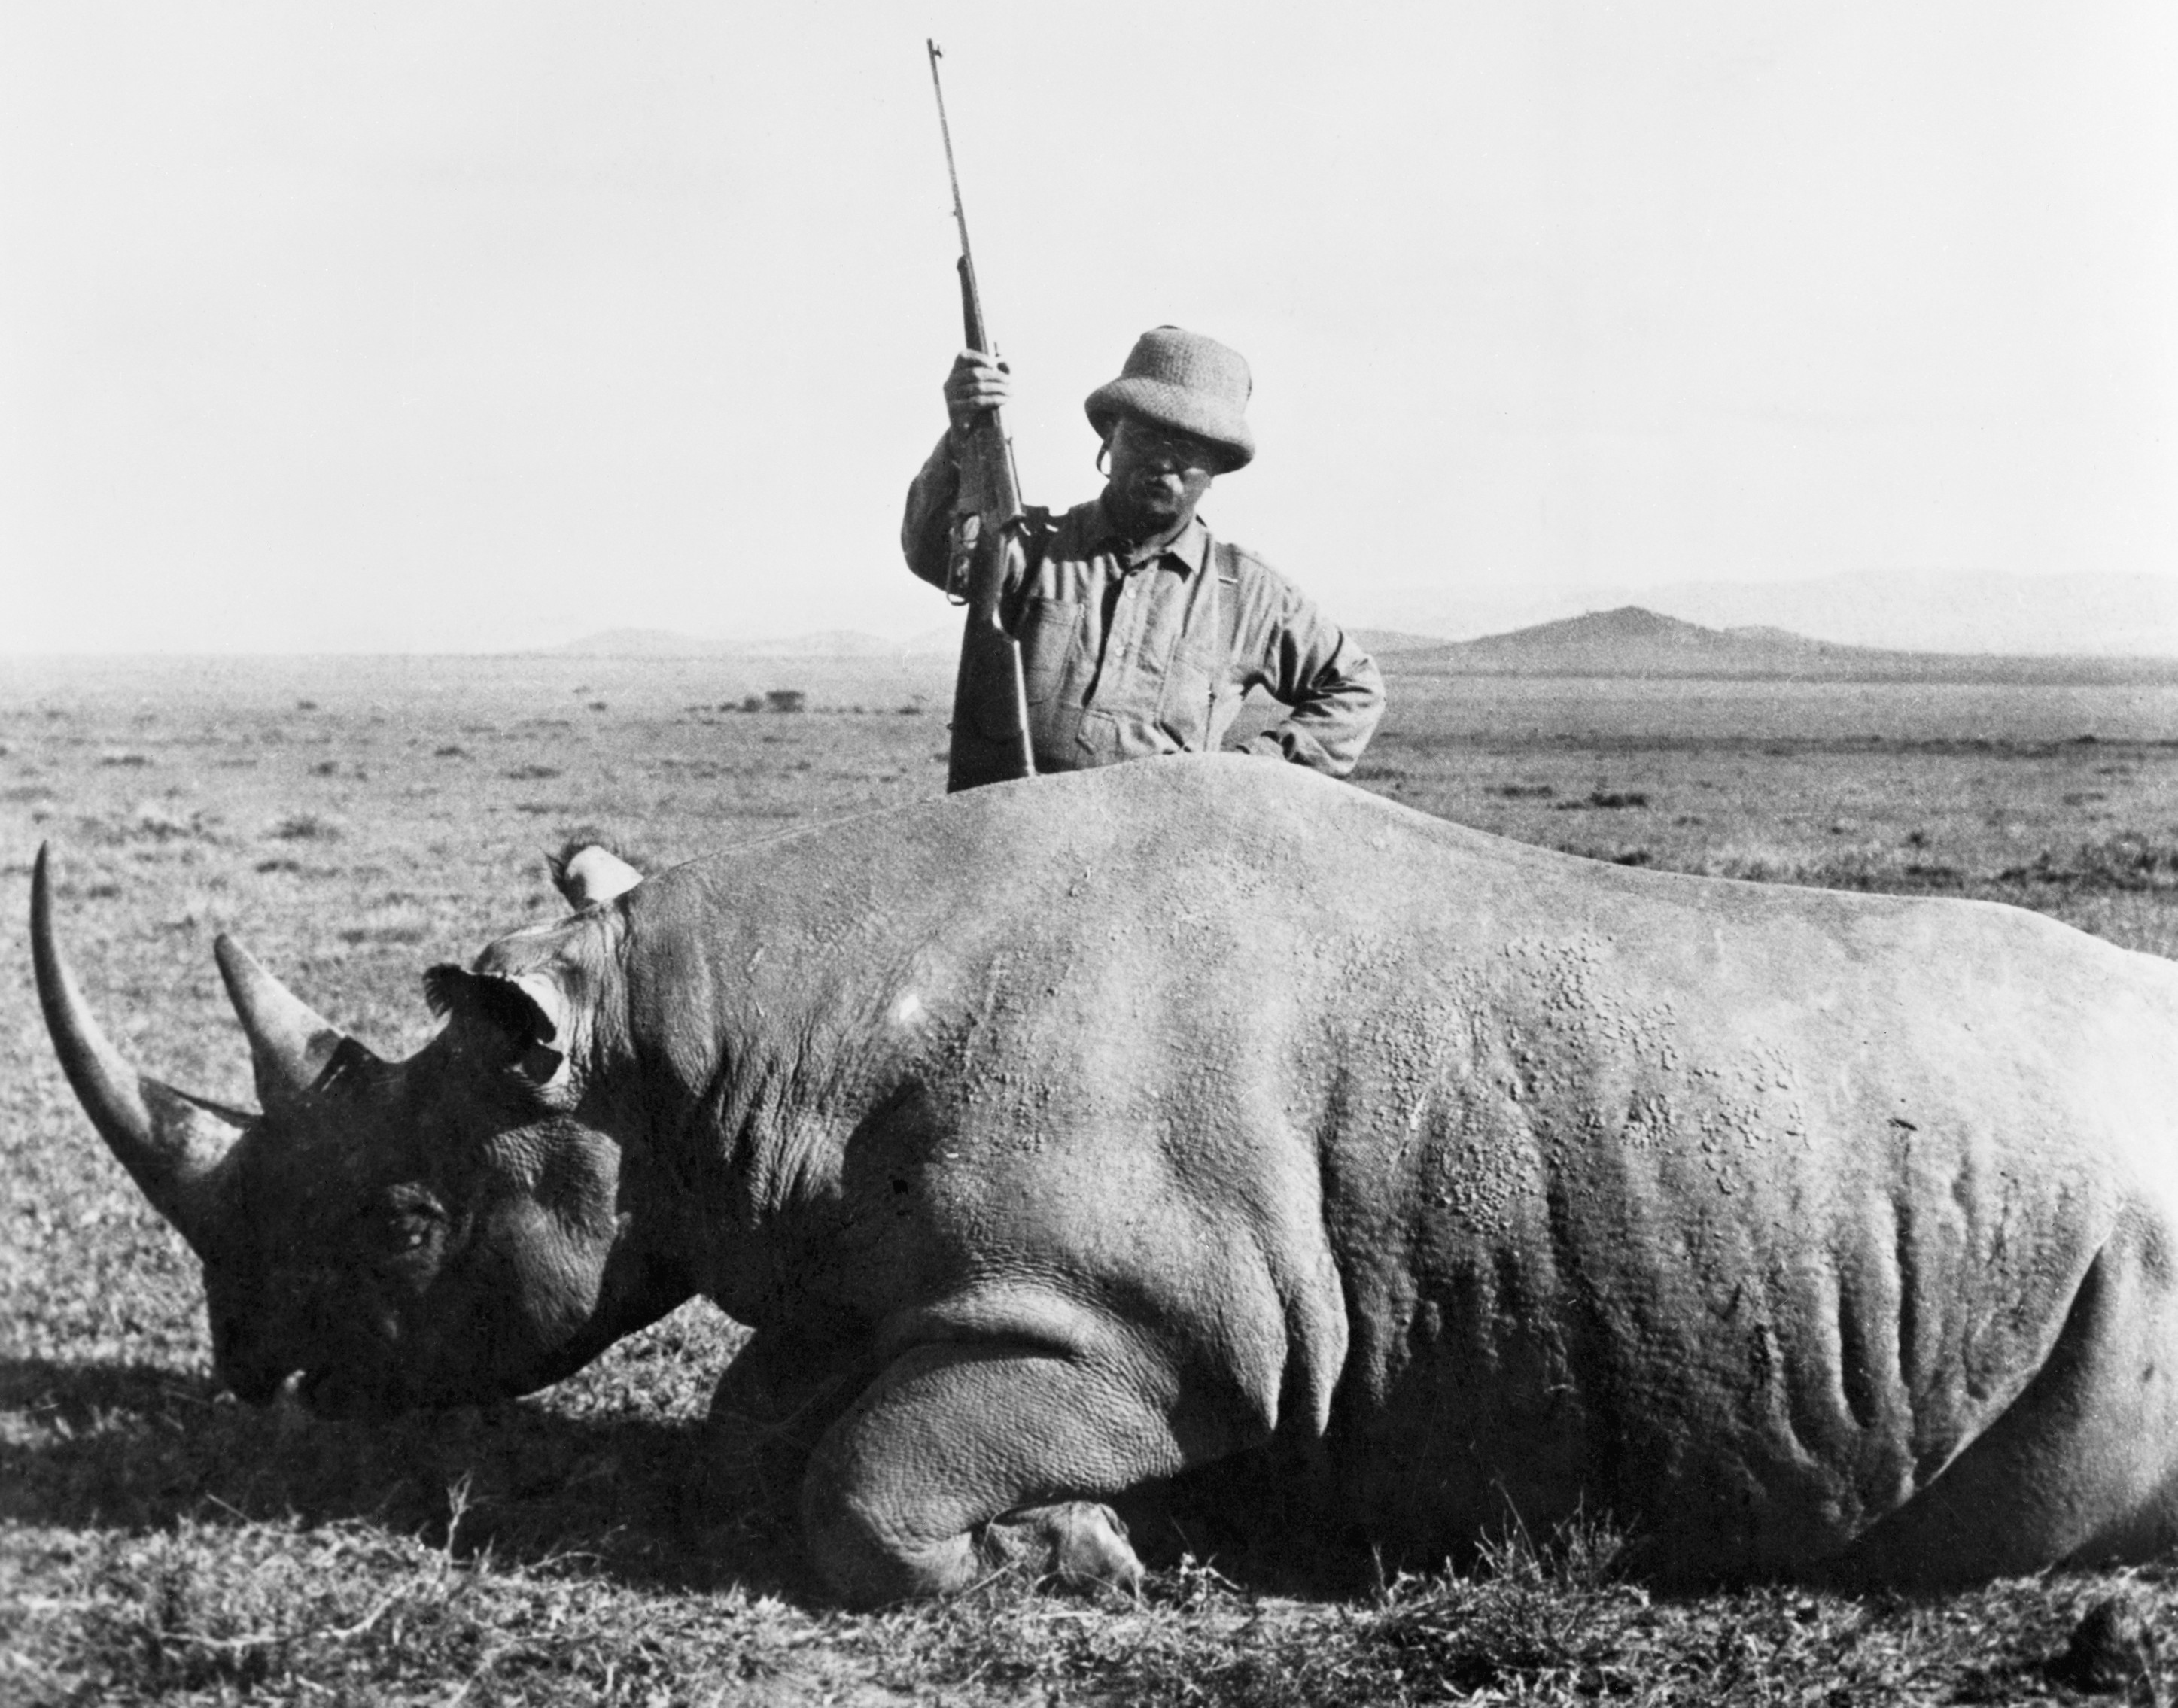 After serving as President of the United States in 1909, Teddy Roosevelt went on an 11-month, 2,500-mile safari. The expedition was funded as a scientific expedition by the Smithsonian Institution, according to the Theodore Roosevelt Association. On the trip, Roosevelt trapped or shot over 11,000 animals, including elephants, hippos, and white rhinos.